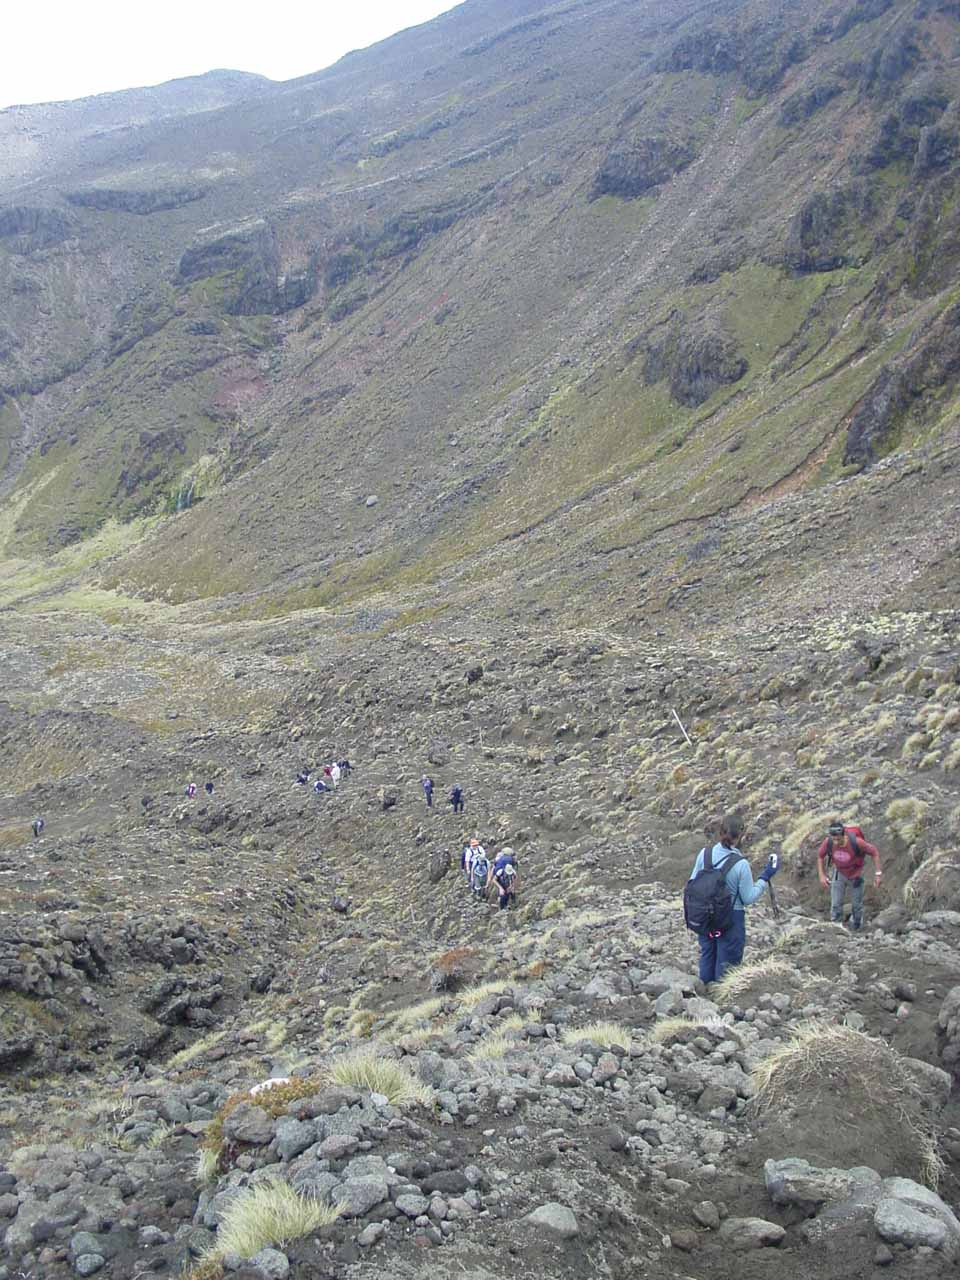 Looking back down at other people making their way up the steep climb to the South Crater on the Tongariro Crossing